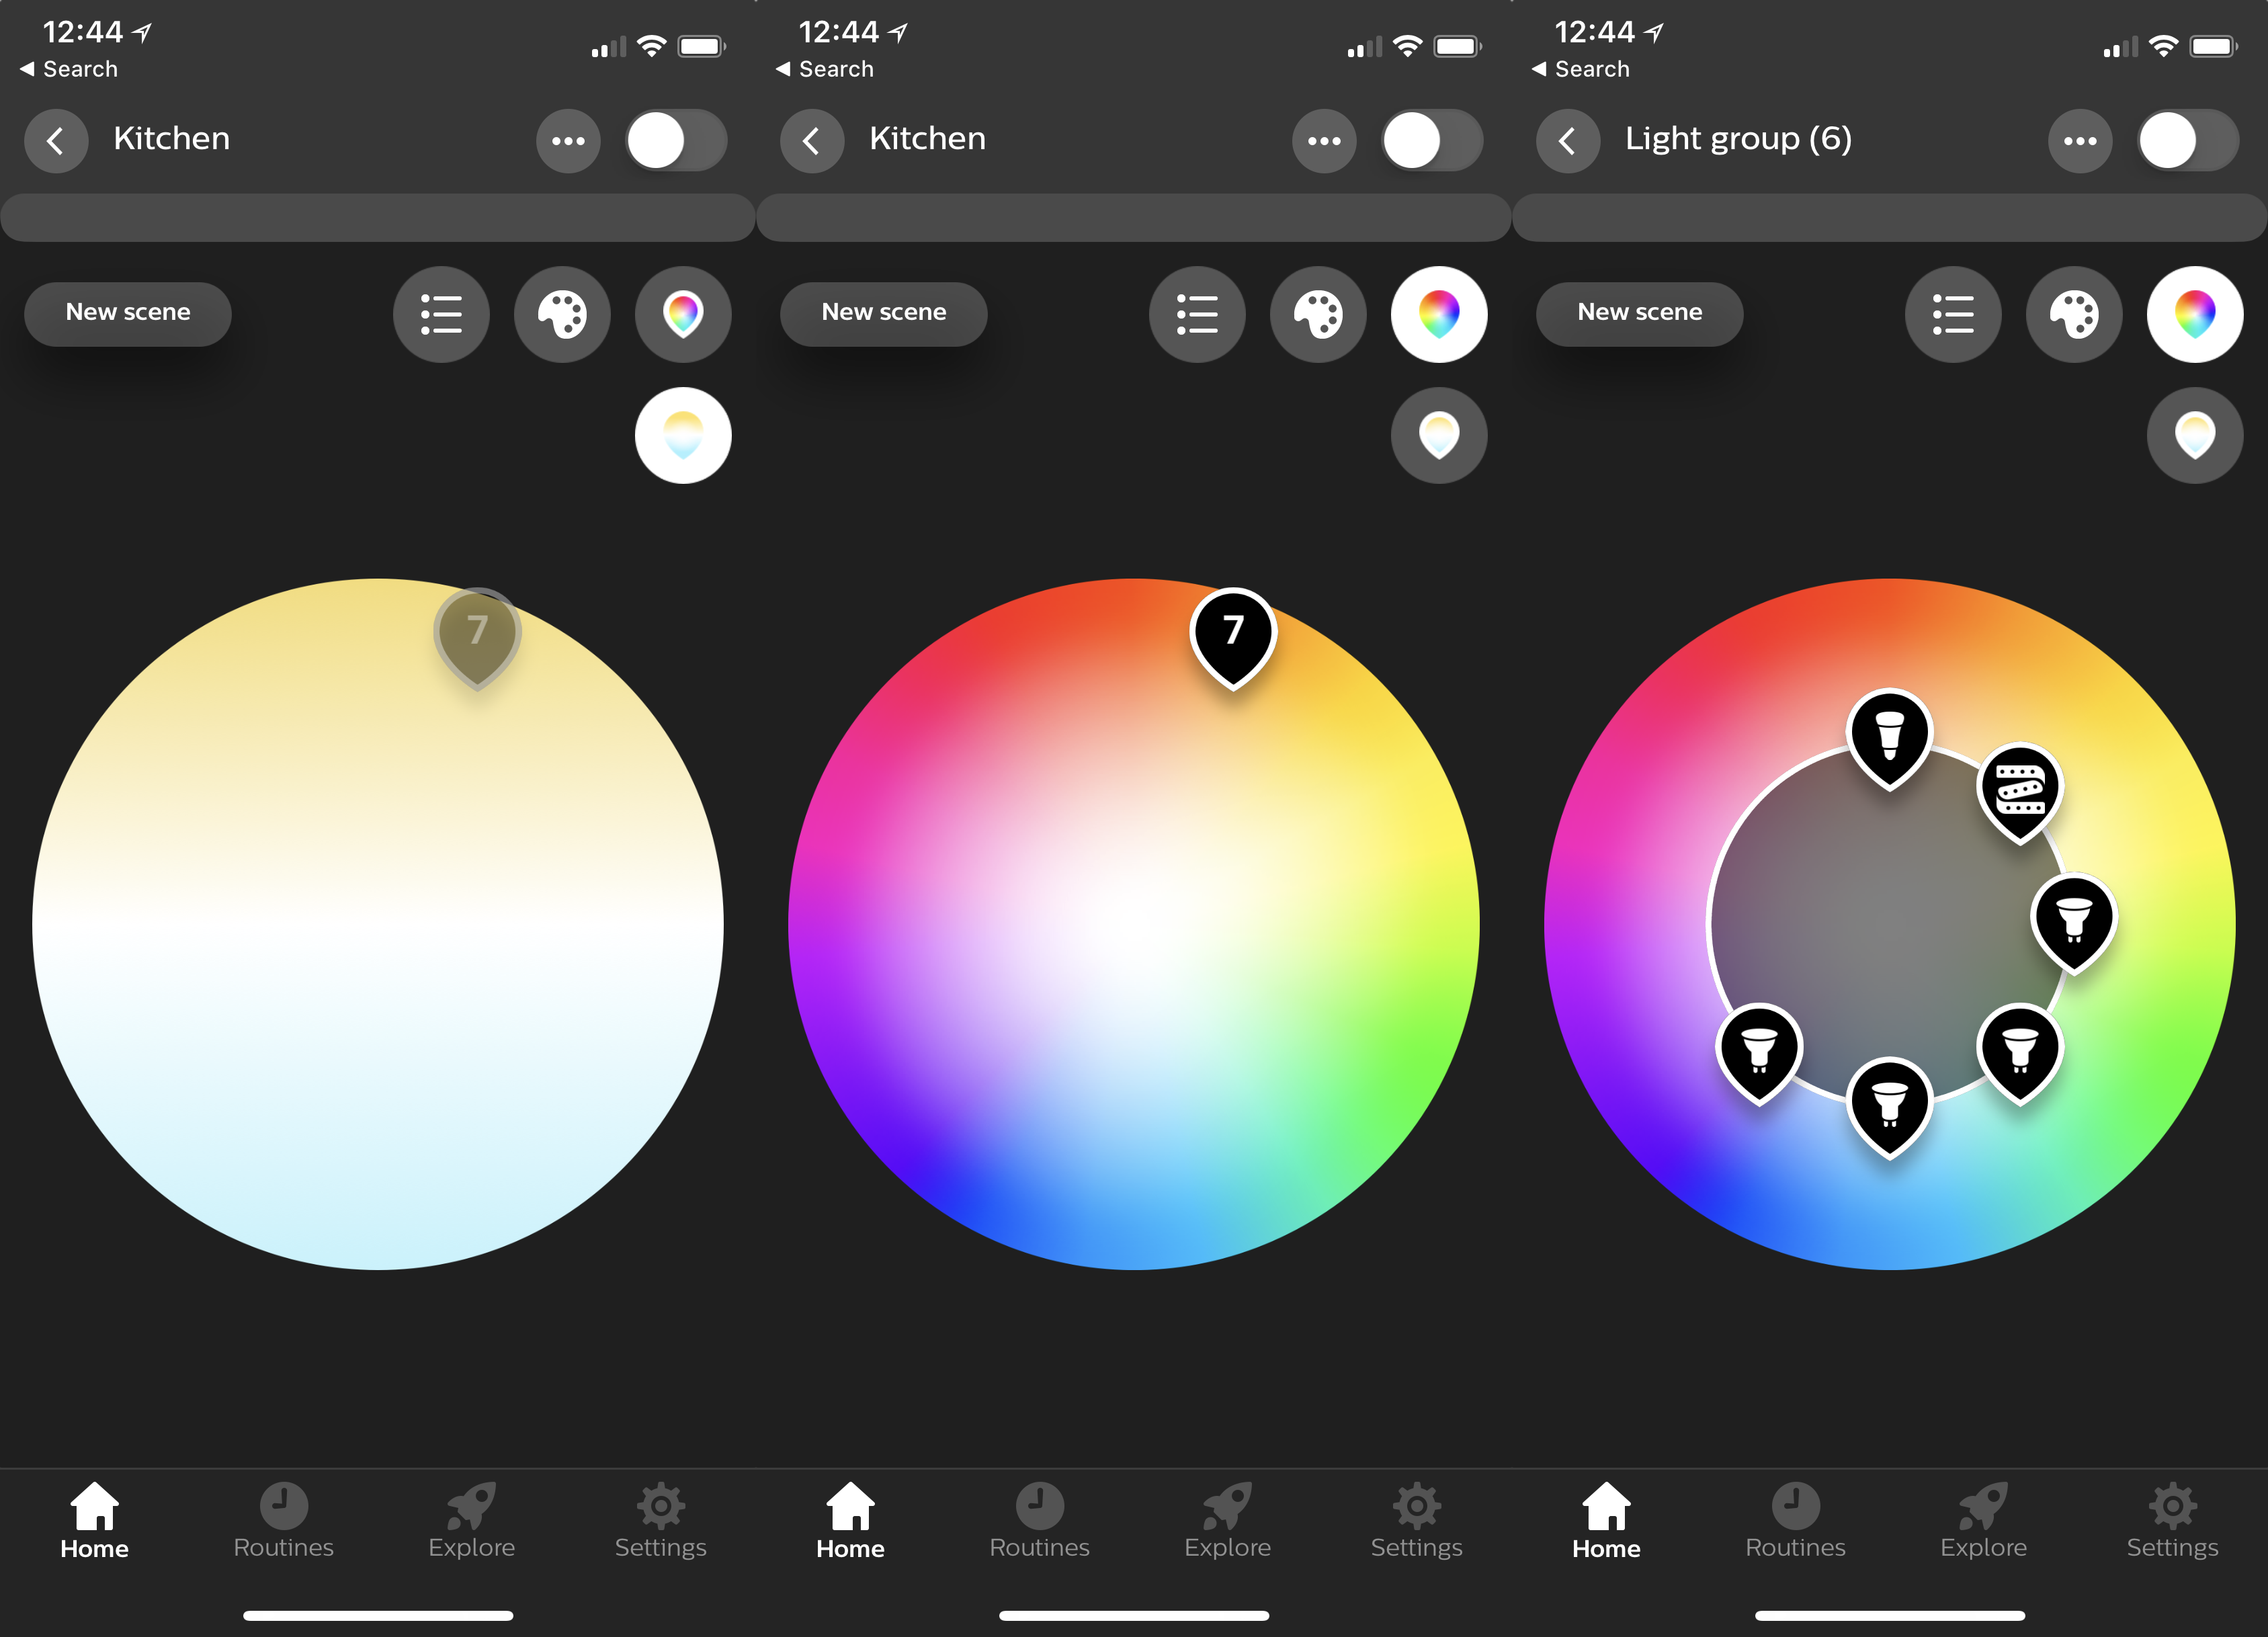 Philips Hue App 3.0 Colour Selection